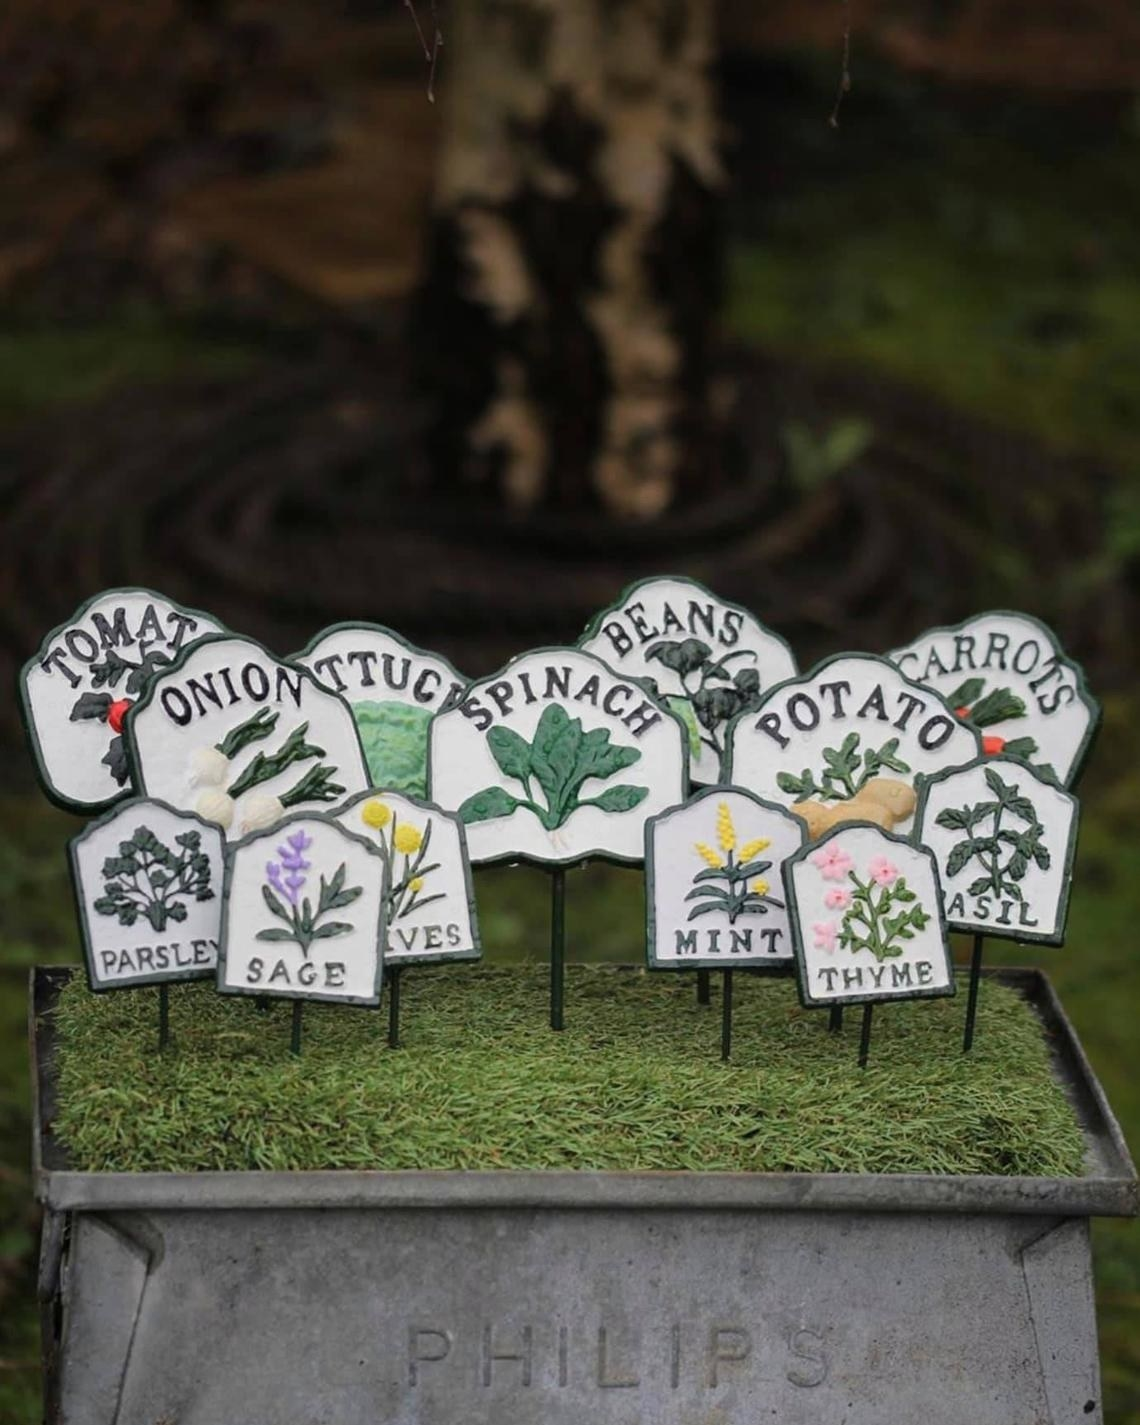 enamel-style plant stakes with names and illustrations